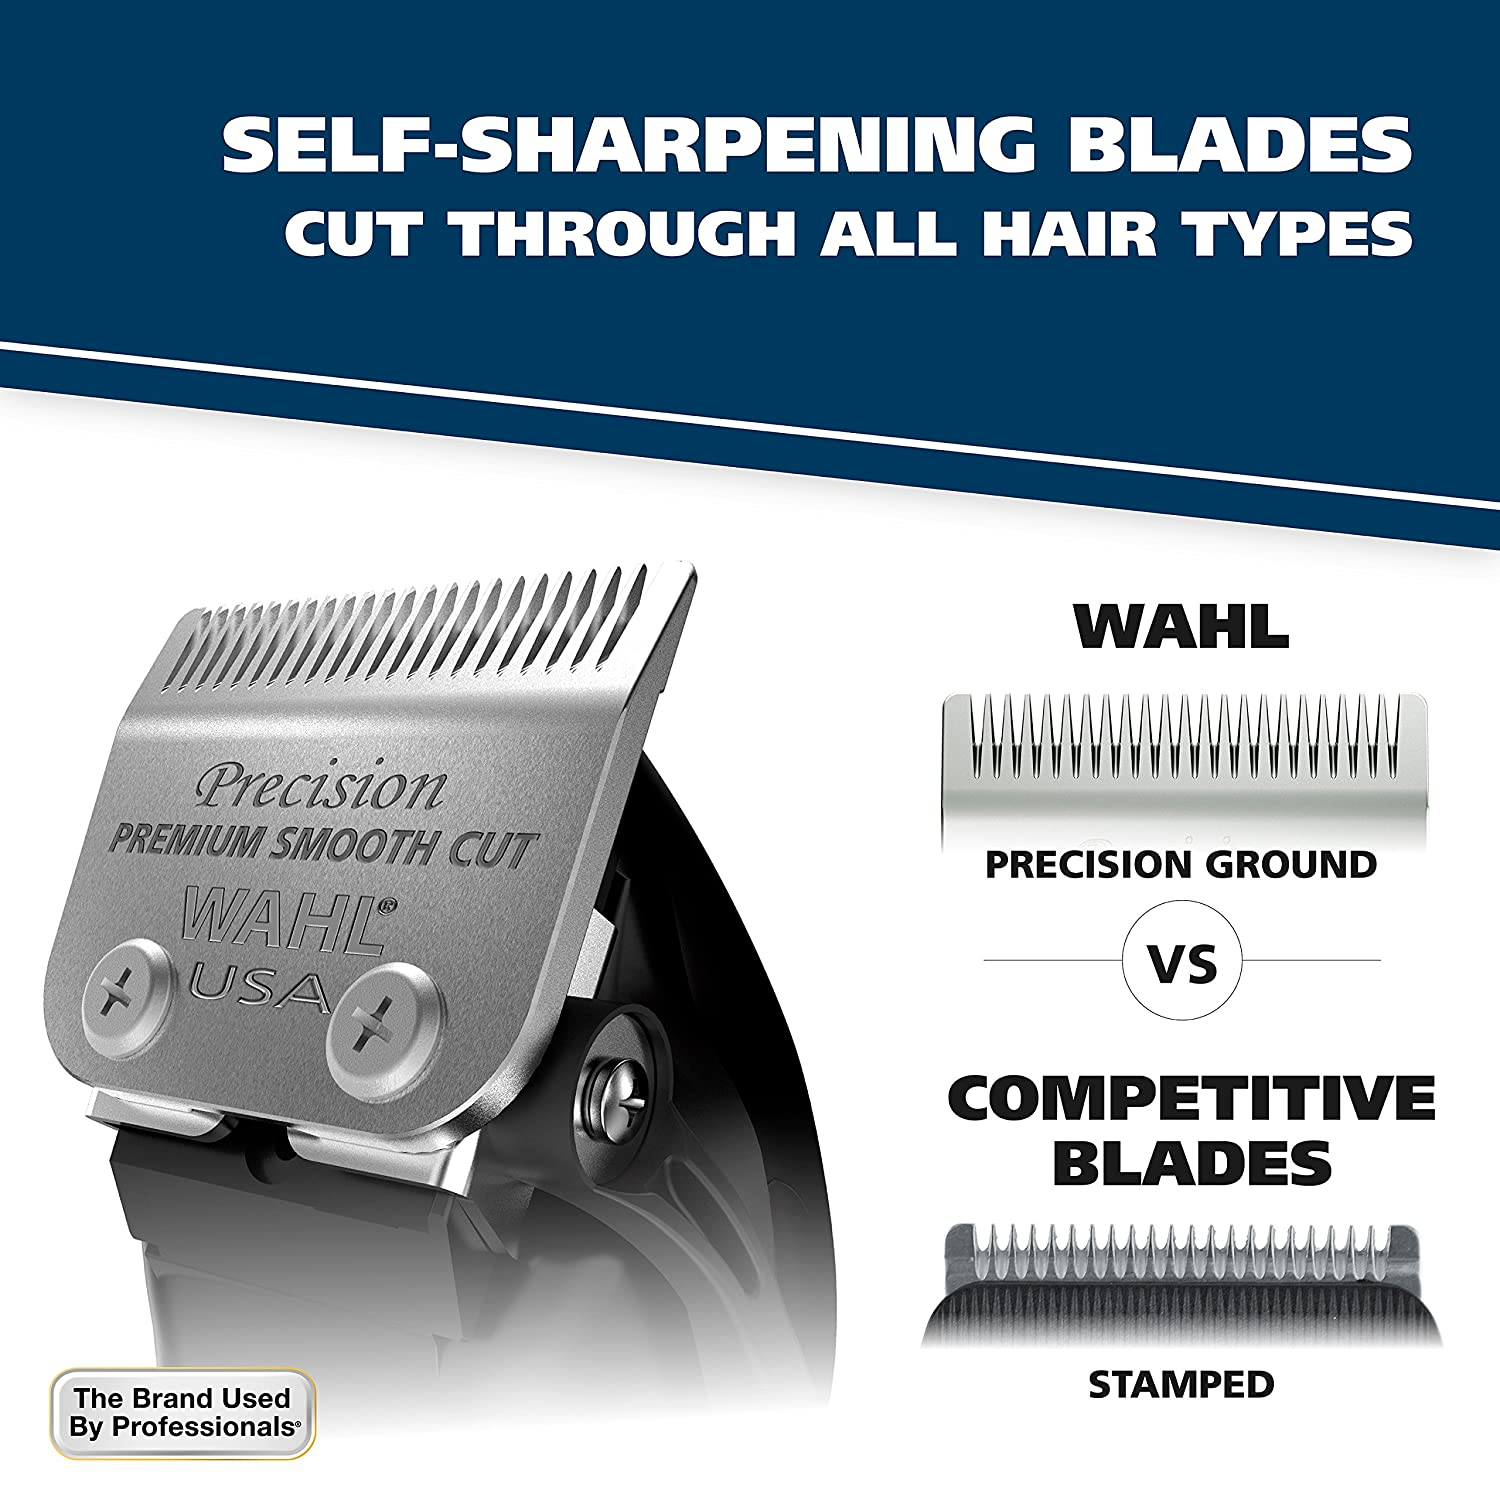 Self-Cut Personal Haircutting Kit - Compact Size for Clipping, Trimming & Grooming Kit